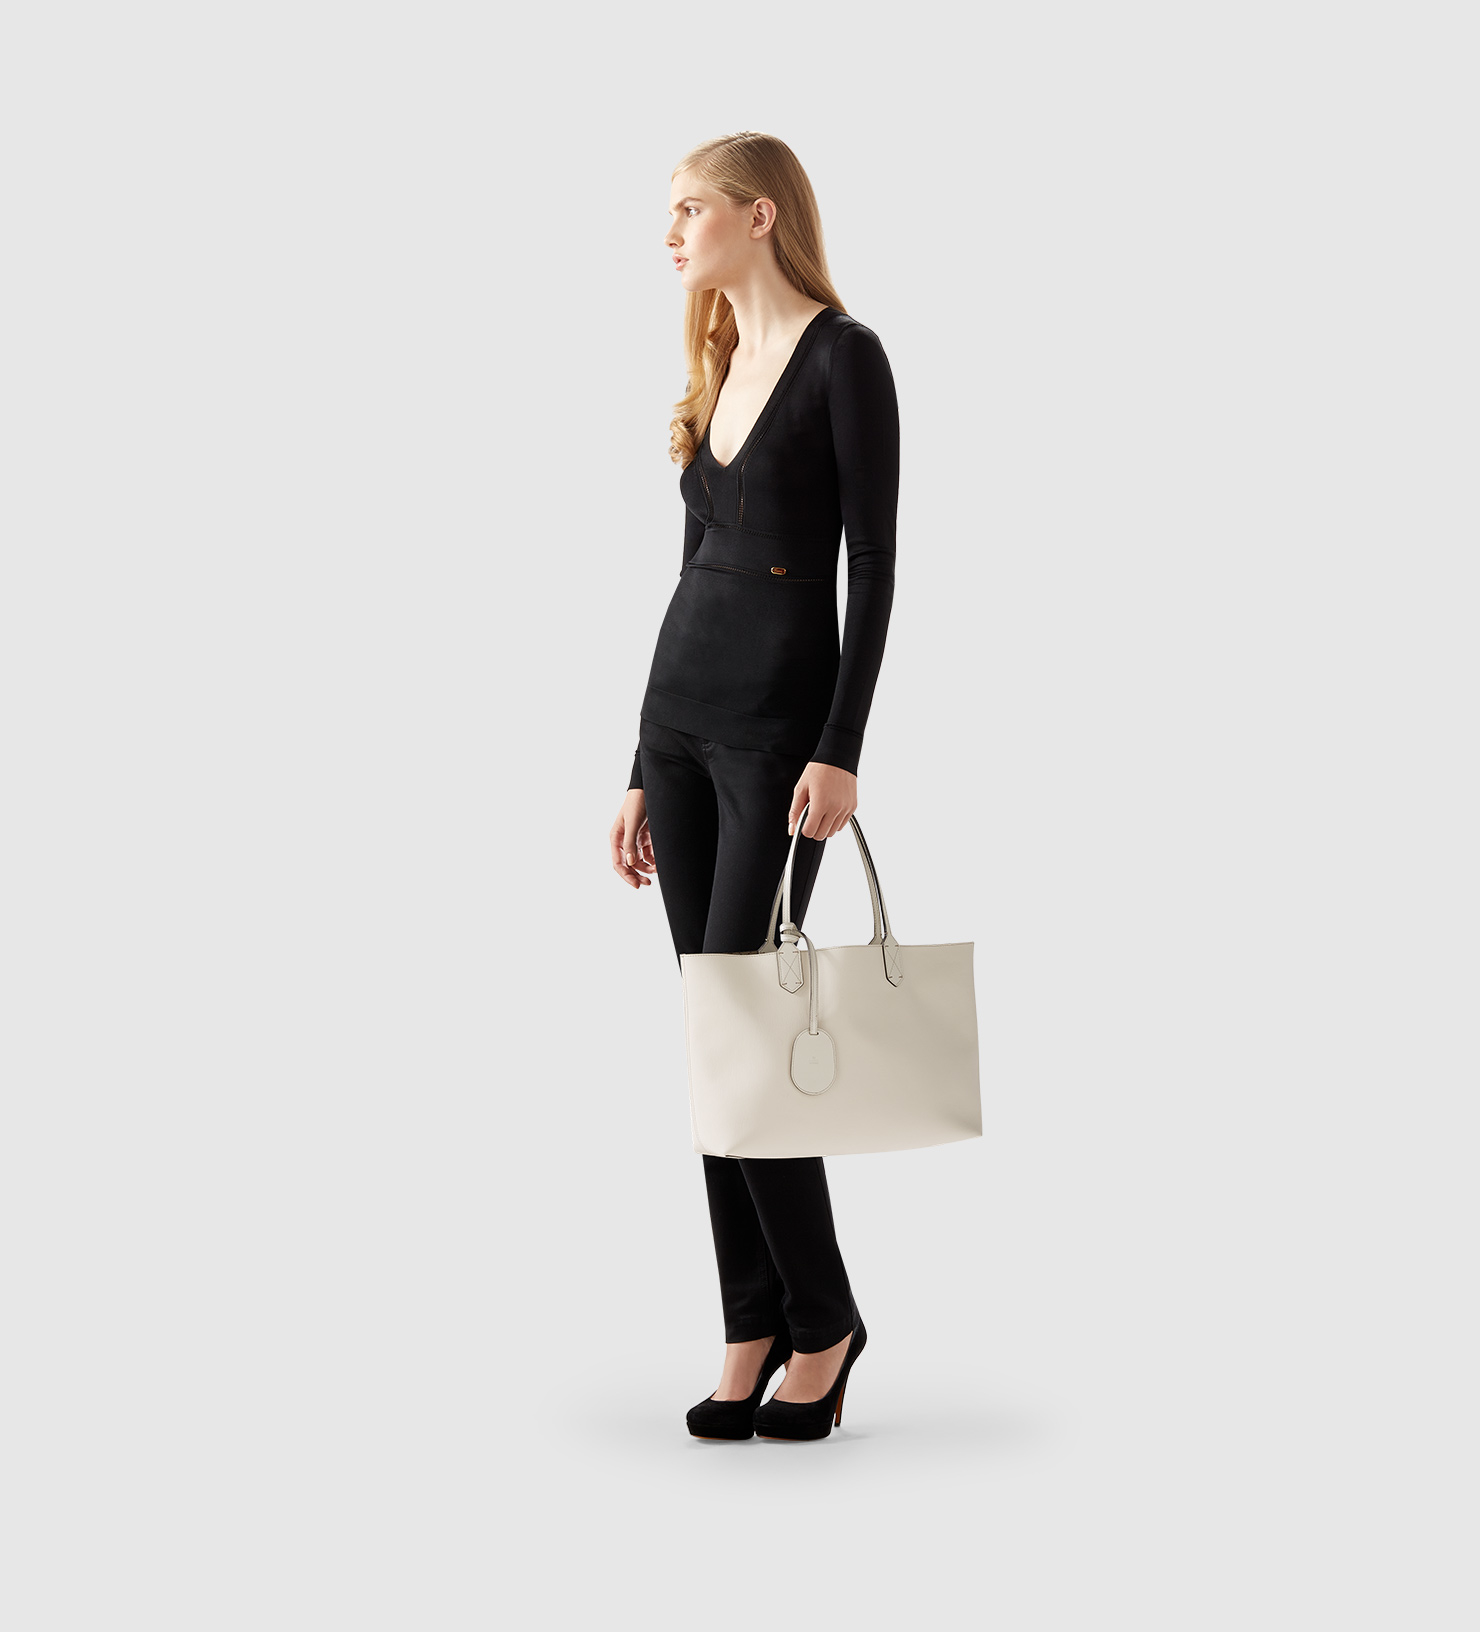 58f116cd07a627 Gucci Reversible Gg Leather Tote in Natural - Lyst